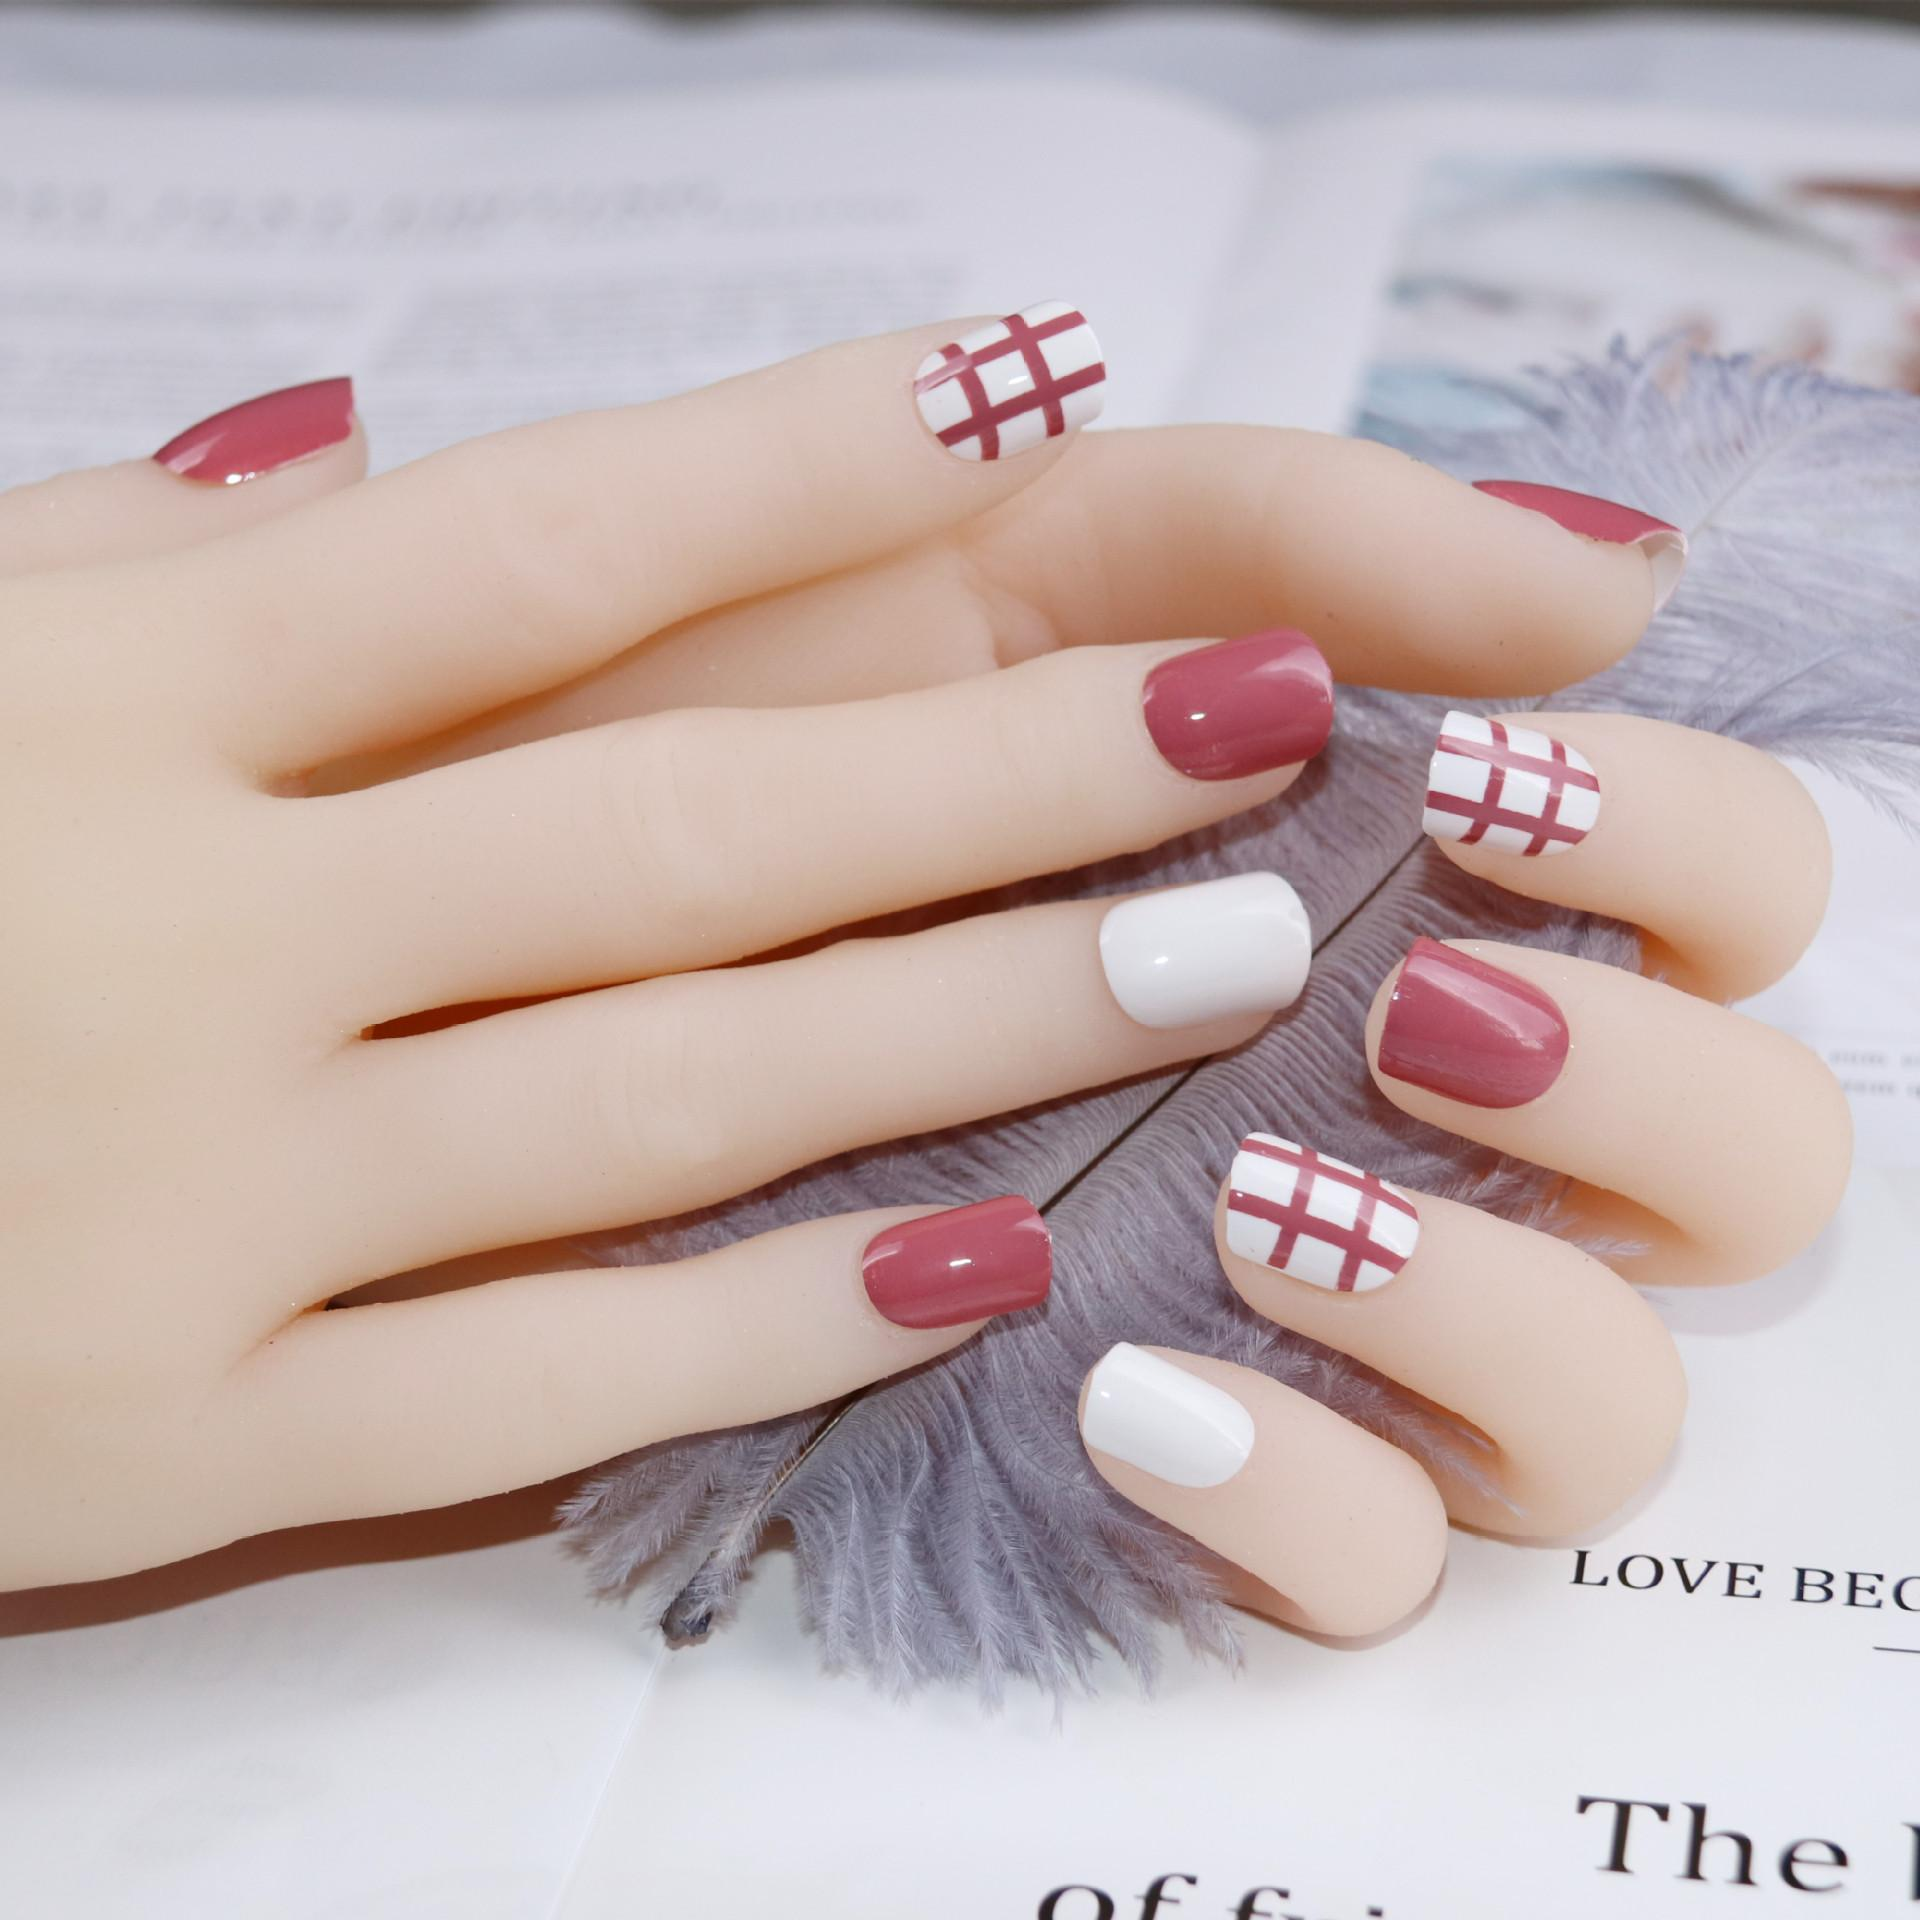 Nail Art 2019: Acquista 2019 Nail Art Finished Short Net Wear Rosso